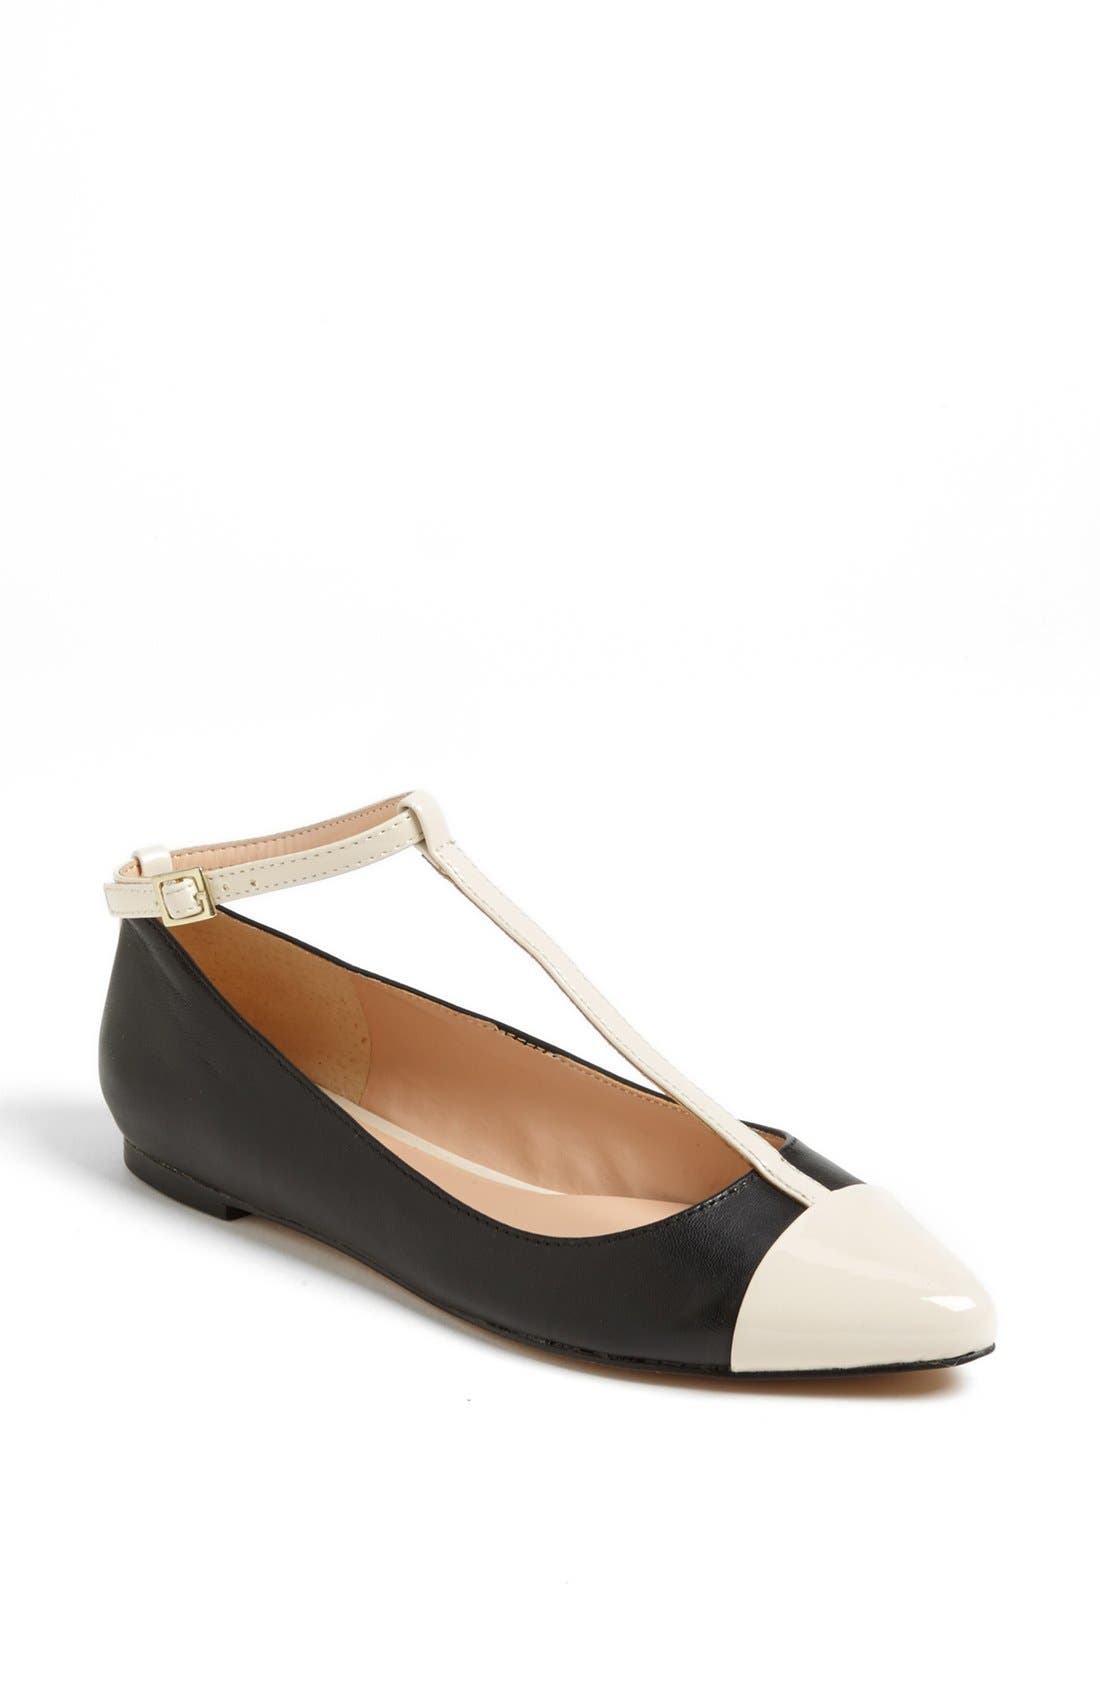 Julianne Hough for Sole Society 'Addy' Flat,                         Main,                         color, 001